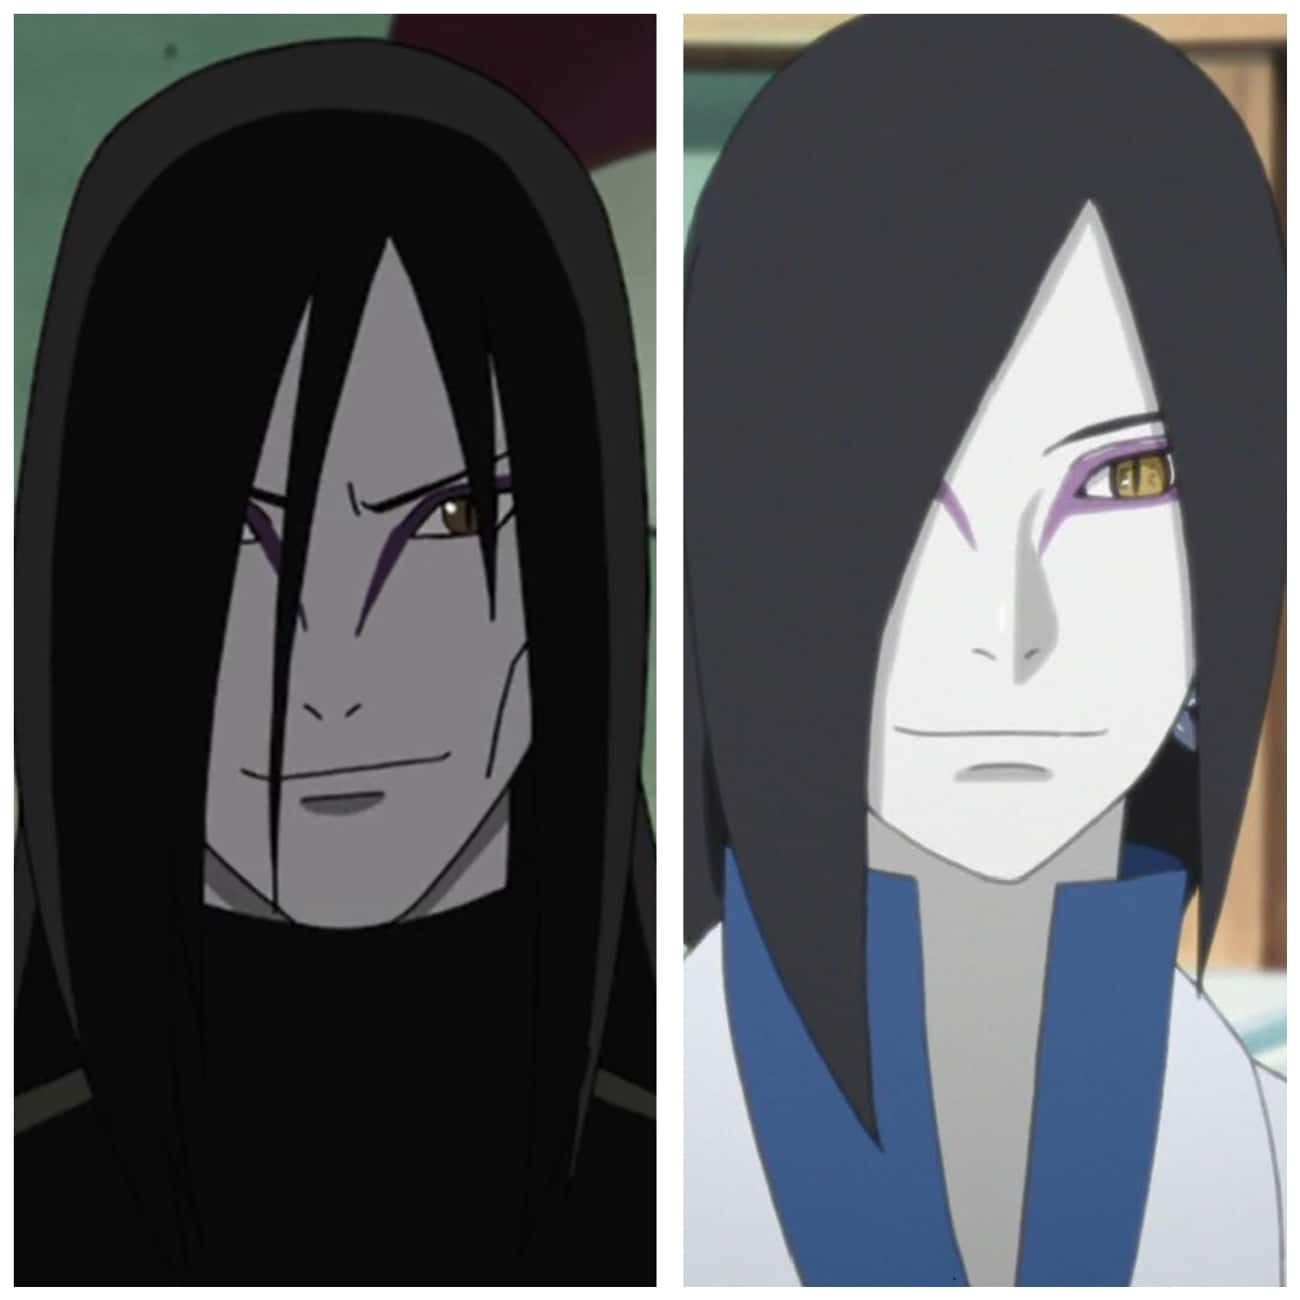 Orochimaru Loses His Venom In  is listed (or ranked) 3 on the list 12 Badass Anime Characters Who Got Lame Over Time